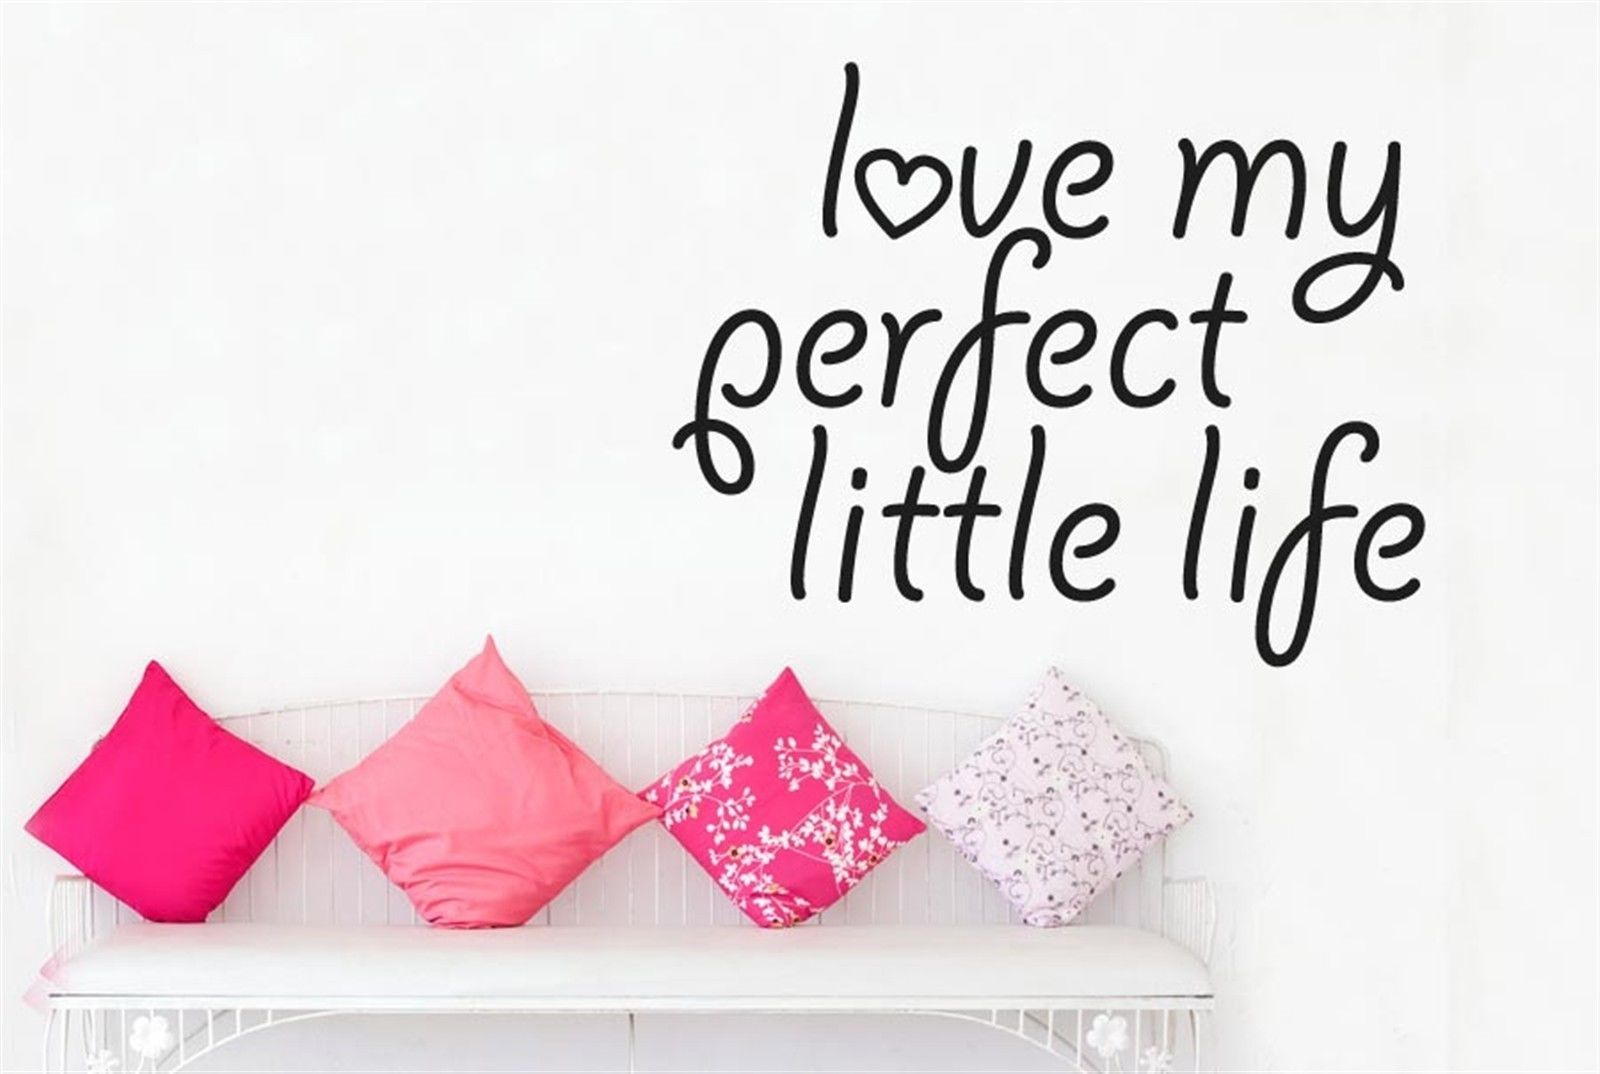 Life Quotes Love 2017 New Fashion Love My Perfect Little Life Wall Stickers Decals